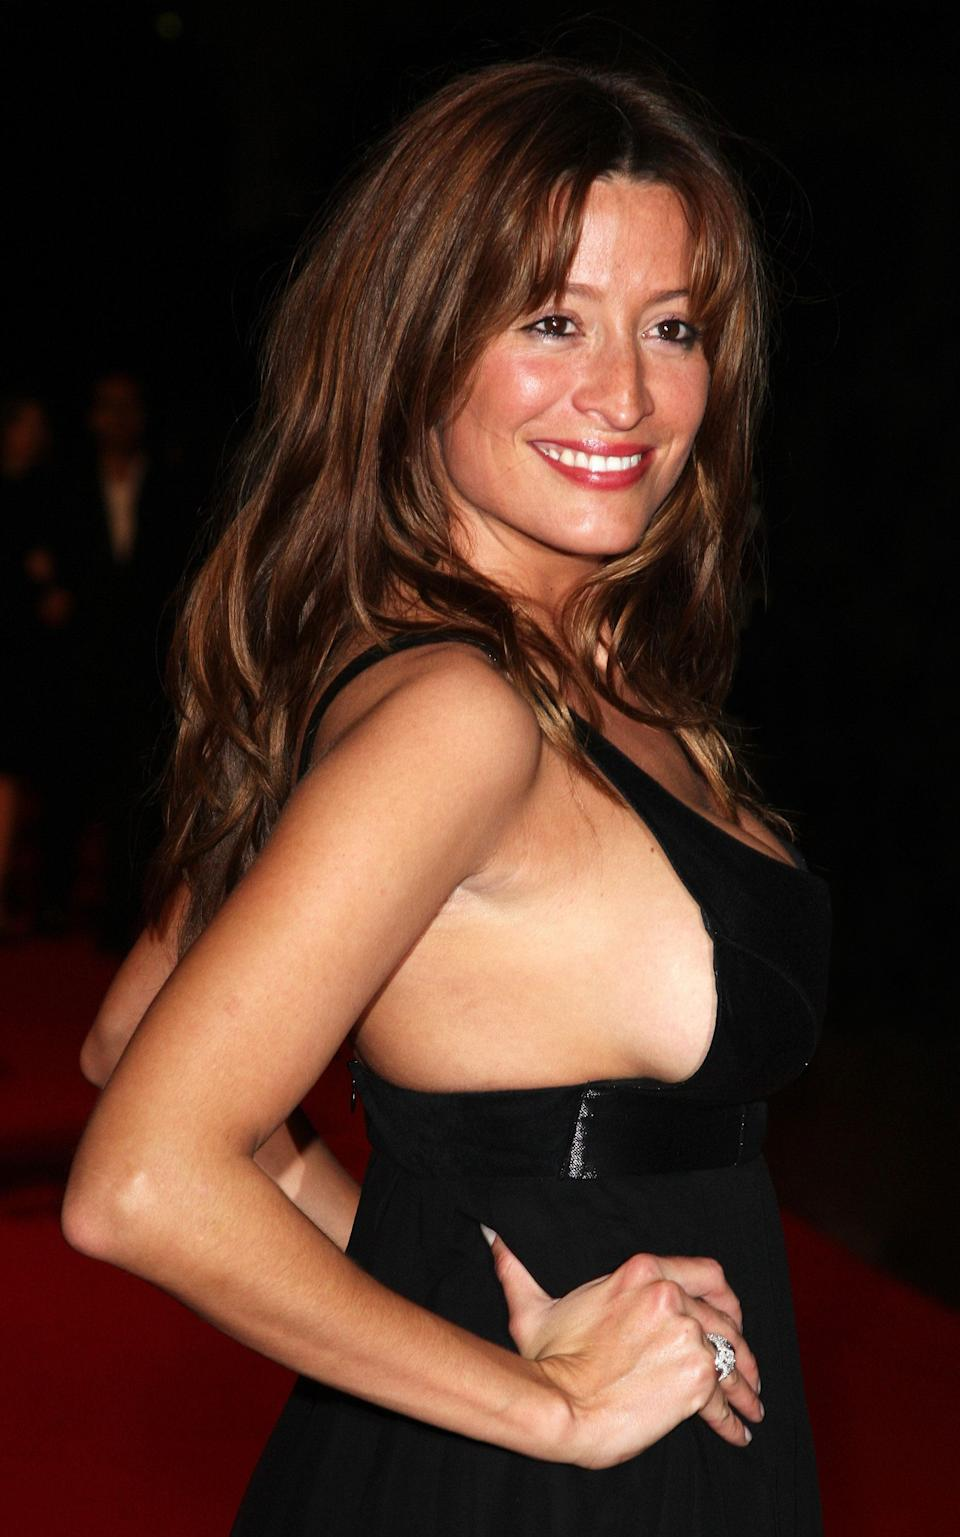 Rebecca Loos' public profile has died down somewhat in recent years, but there was a time when a D-list reality show wasn't complete without her presence - and each appearance was more notorious than the last.<br /><br />She famously got into a spat with Sharon Osbourne during X Factor: Battle Of The Stars, and we'll not even mention what she got up to with a pig on The Farm.<br /><br />As well as Celebrity Love Island and Cirque De Celebrité, Rebecca's reality TV stints went international when she appeared on the Spanish version of Survivor.